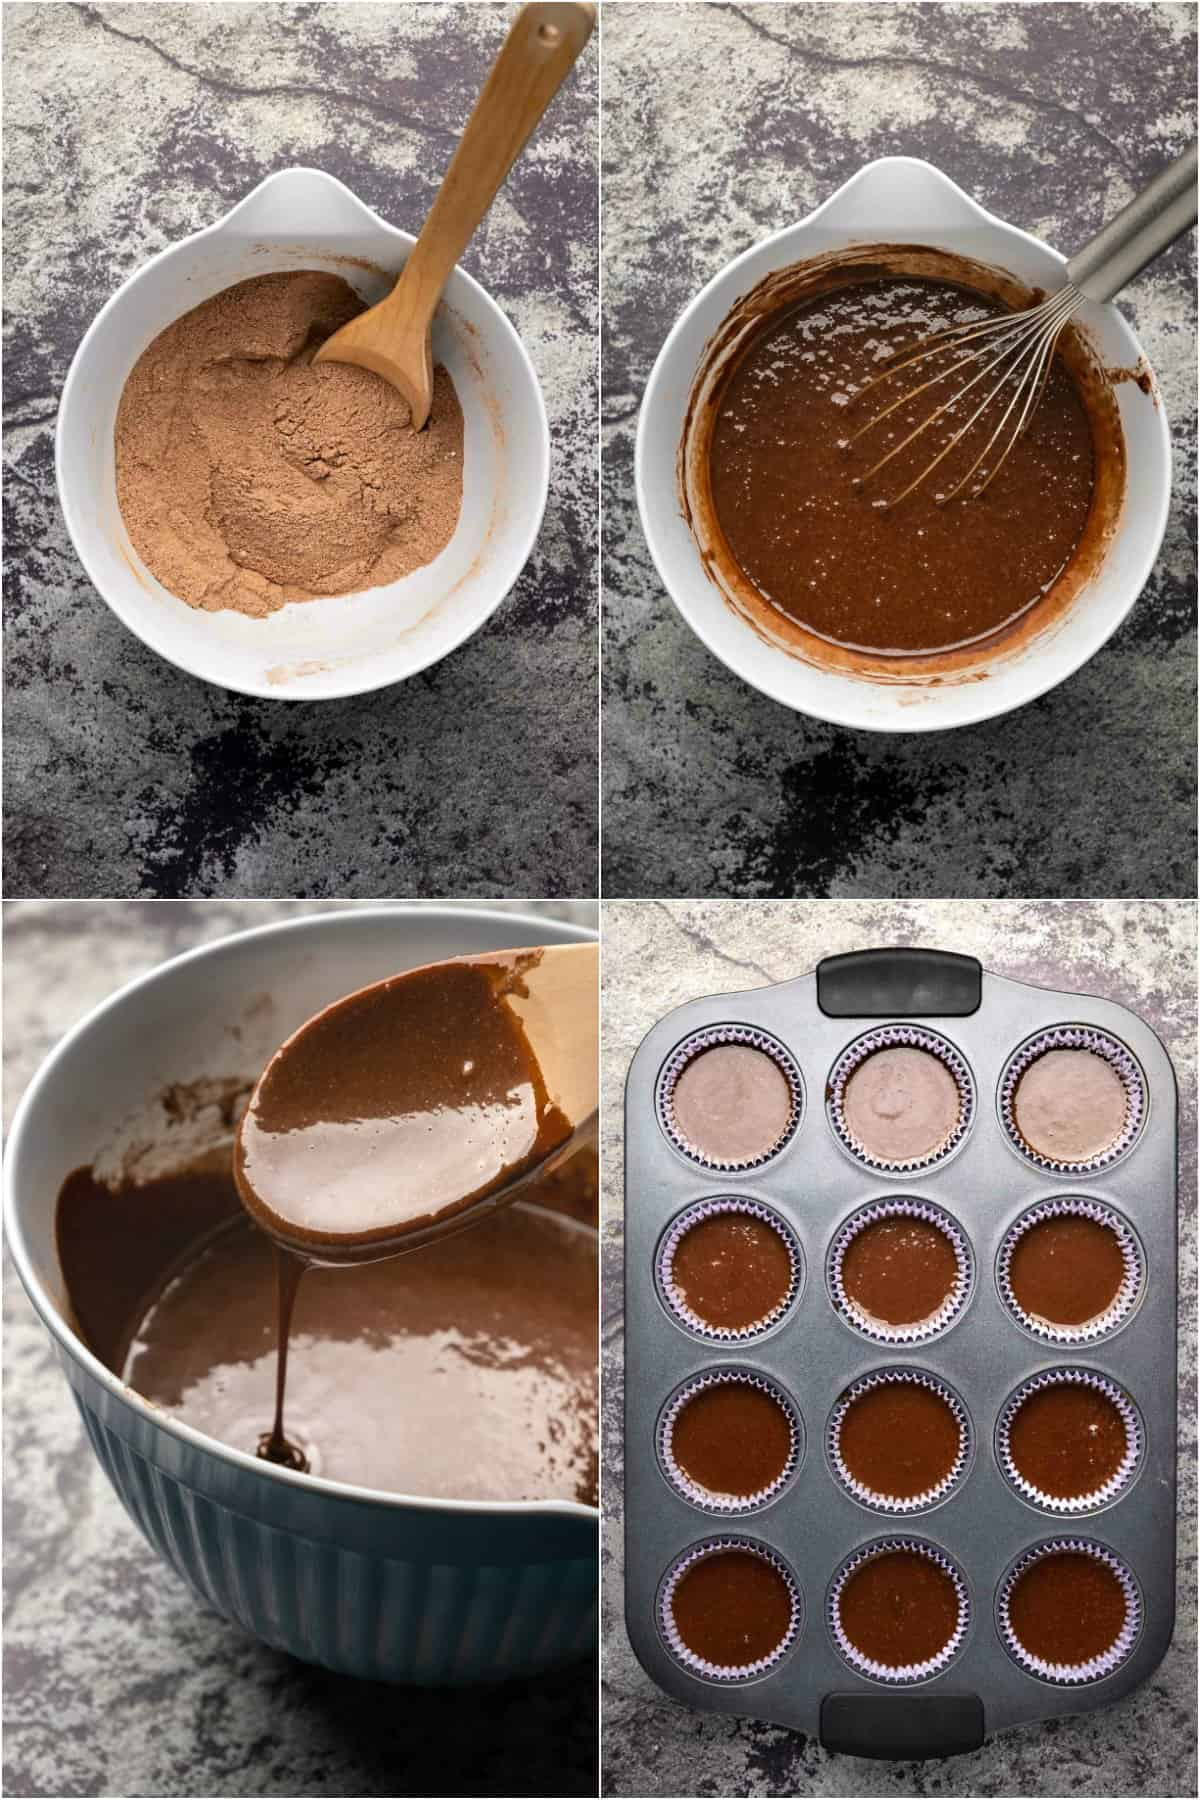 Step by step process photo collage of making chocolate cupcakes.